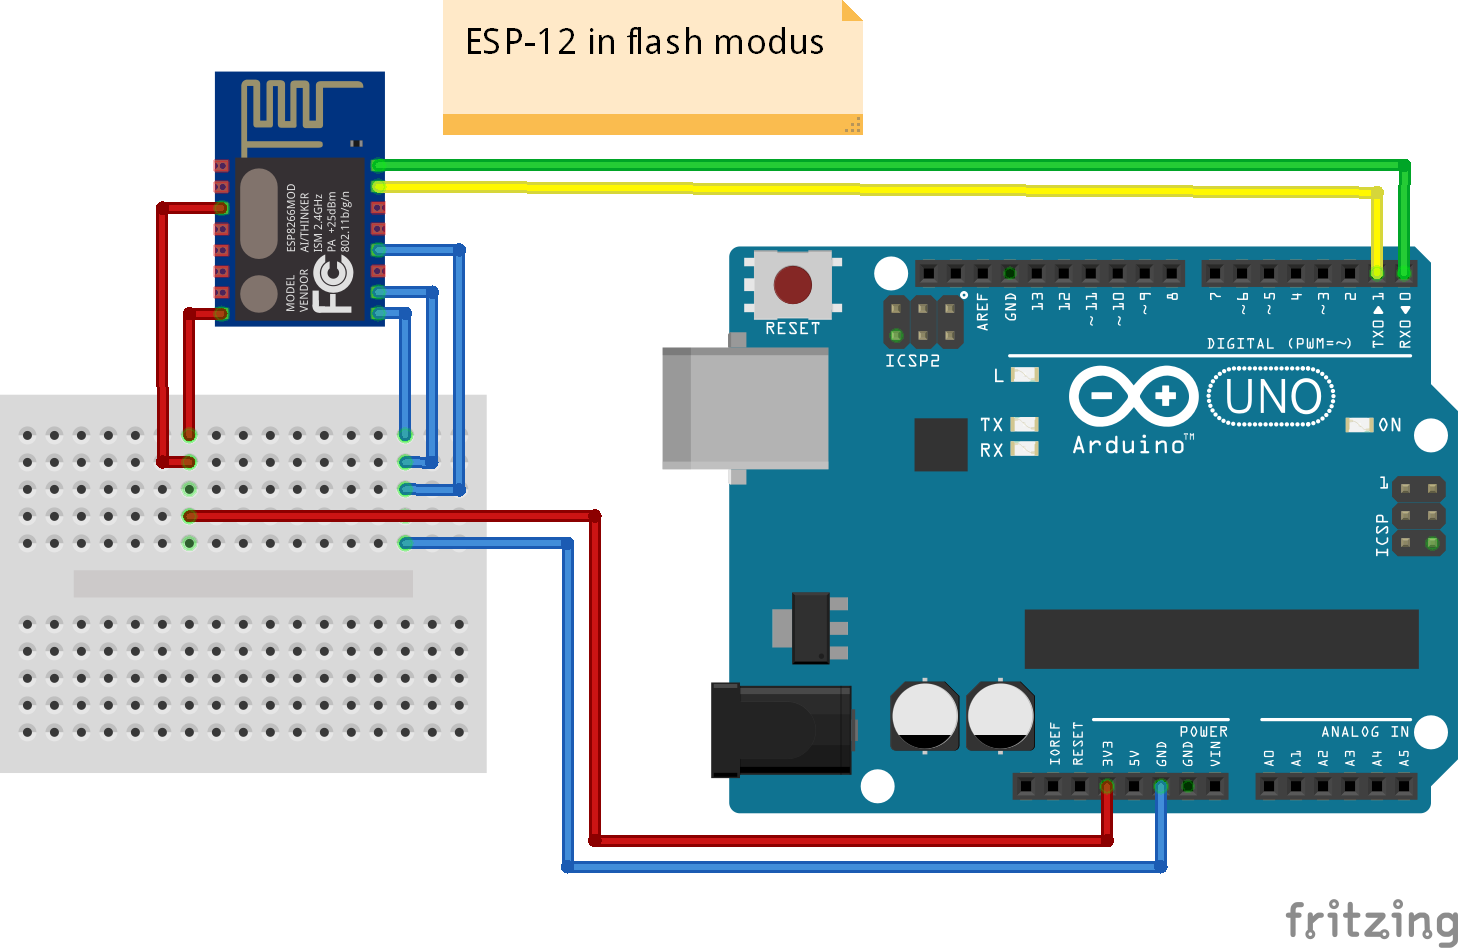 esp8266 esp-12 module aansluiten in flash modus via Arduino